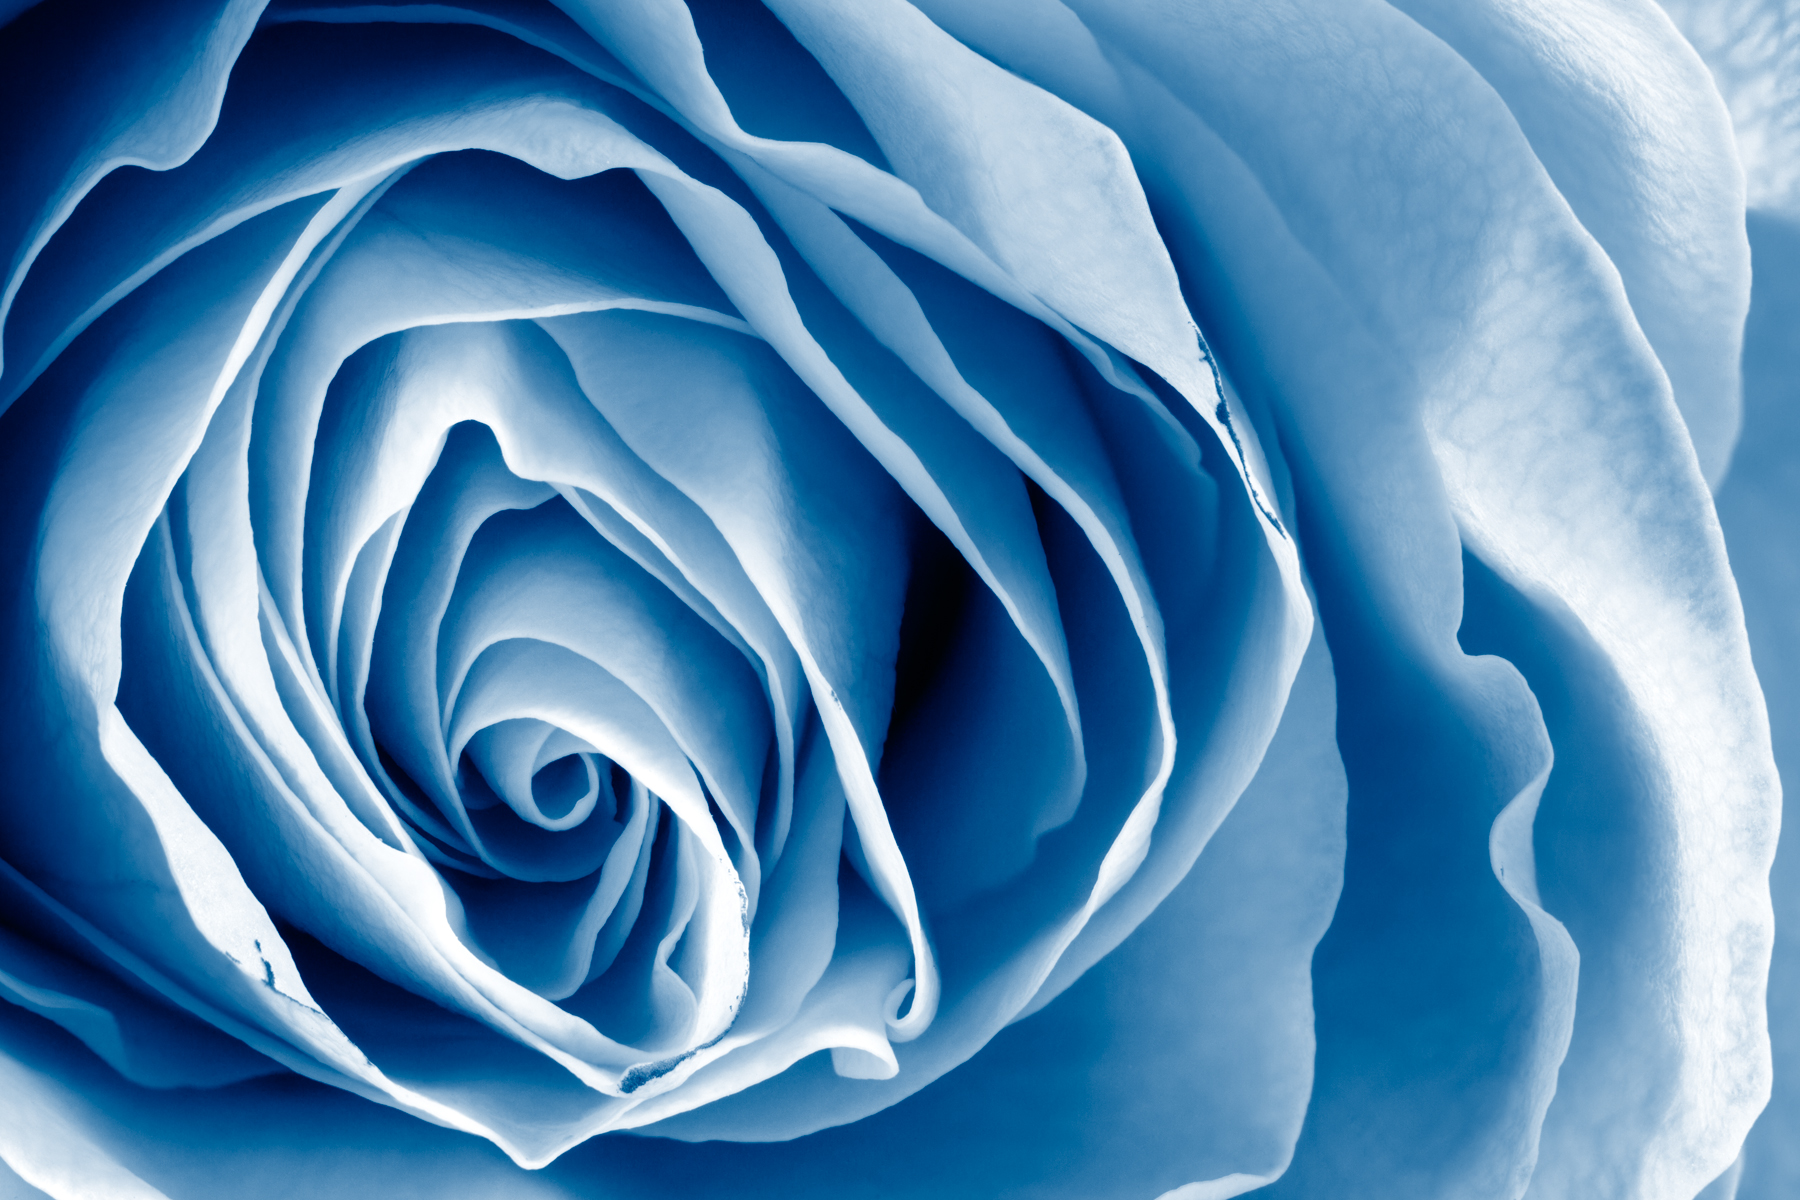 Blue rose - hdr photo